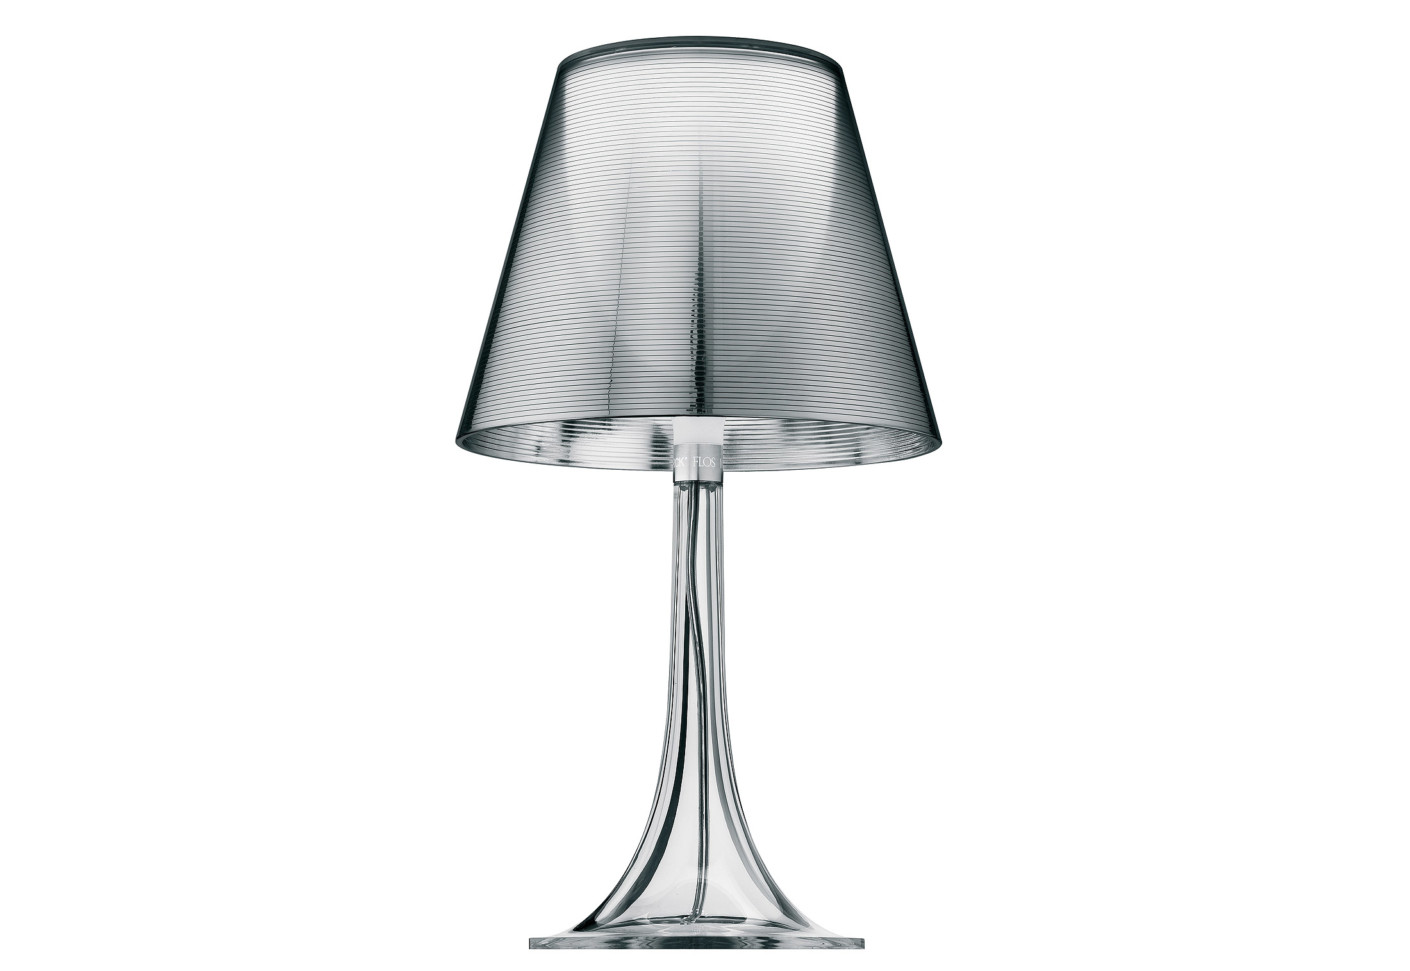 Miss k table lamp by flos stylepark for Miss k table lamp closeout special